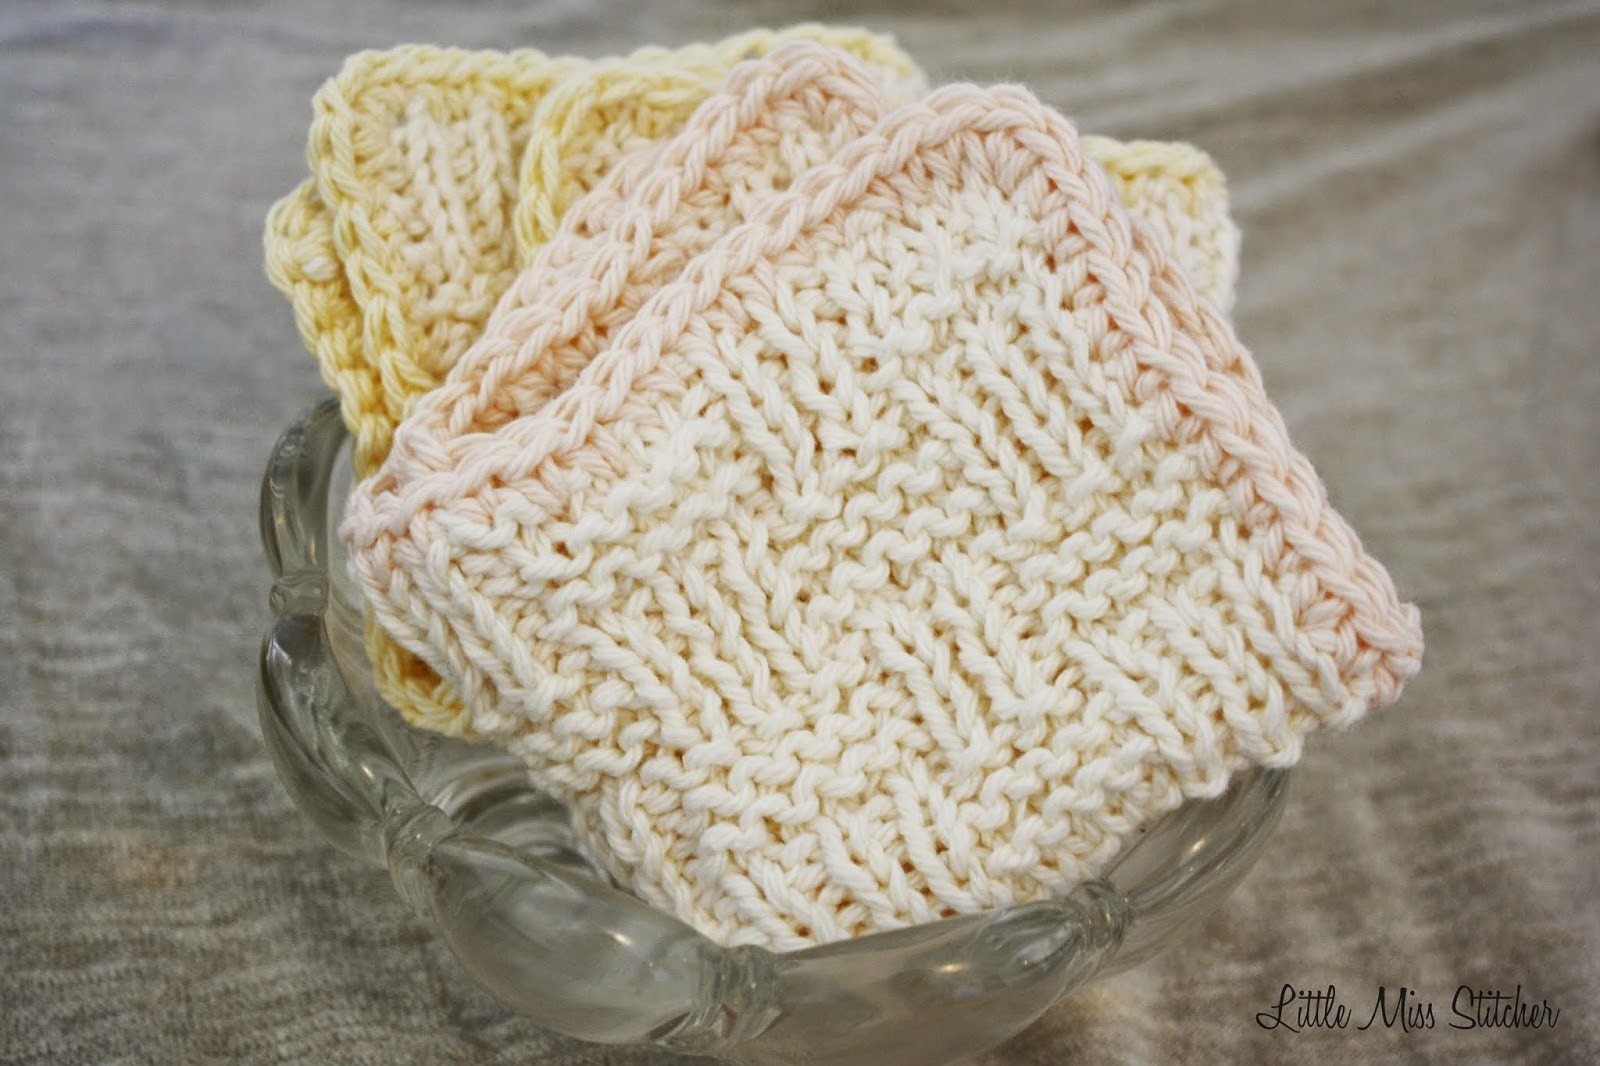 Knitted Dishcloth Unique Little Miss Stitcher 5 Free Knit Dishcloth Patterns Of Gorgeous 46 Photos Knitted Dishcloth